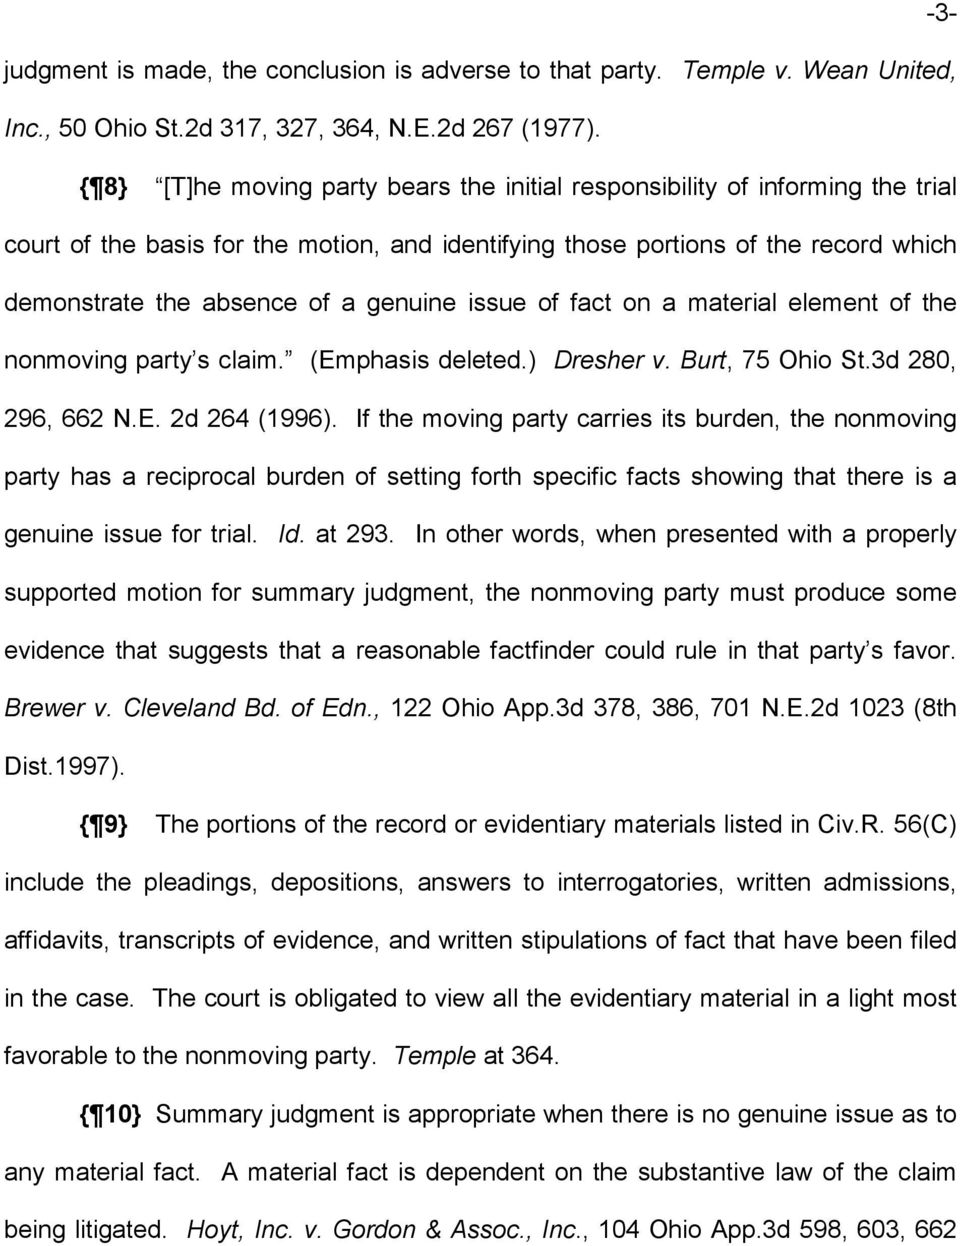 genuine issue of fact on a material element of the nonmoving party s claim. (Emphasis deleted.) Dresher v. Burt, 75 Ohio St.3d 280, 296, 662 N.E. 2d 264 (1996).